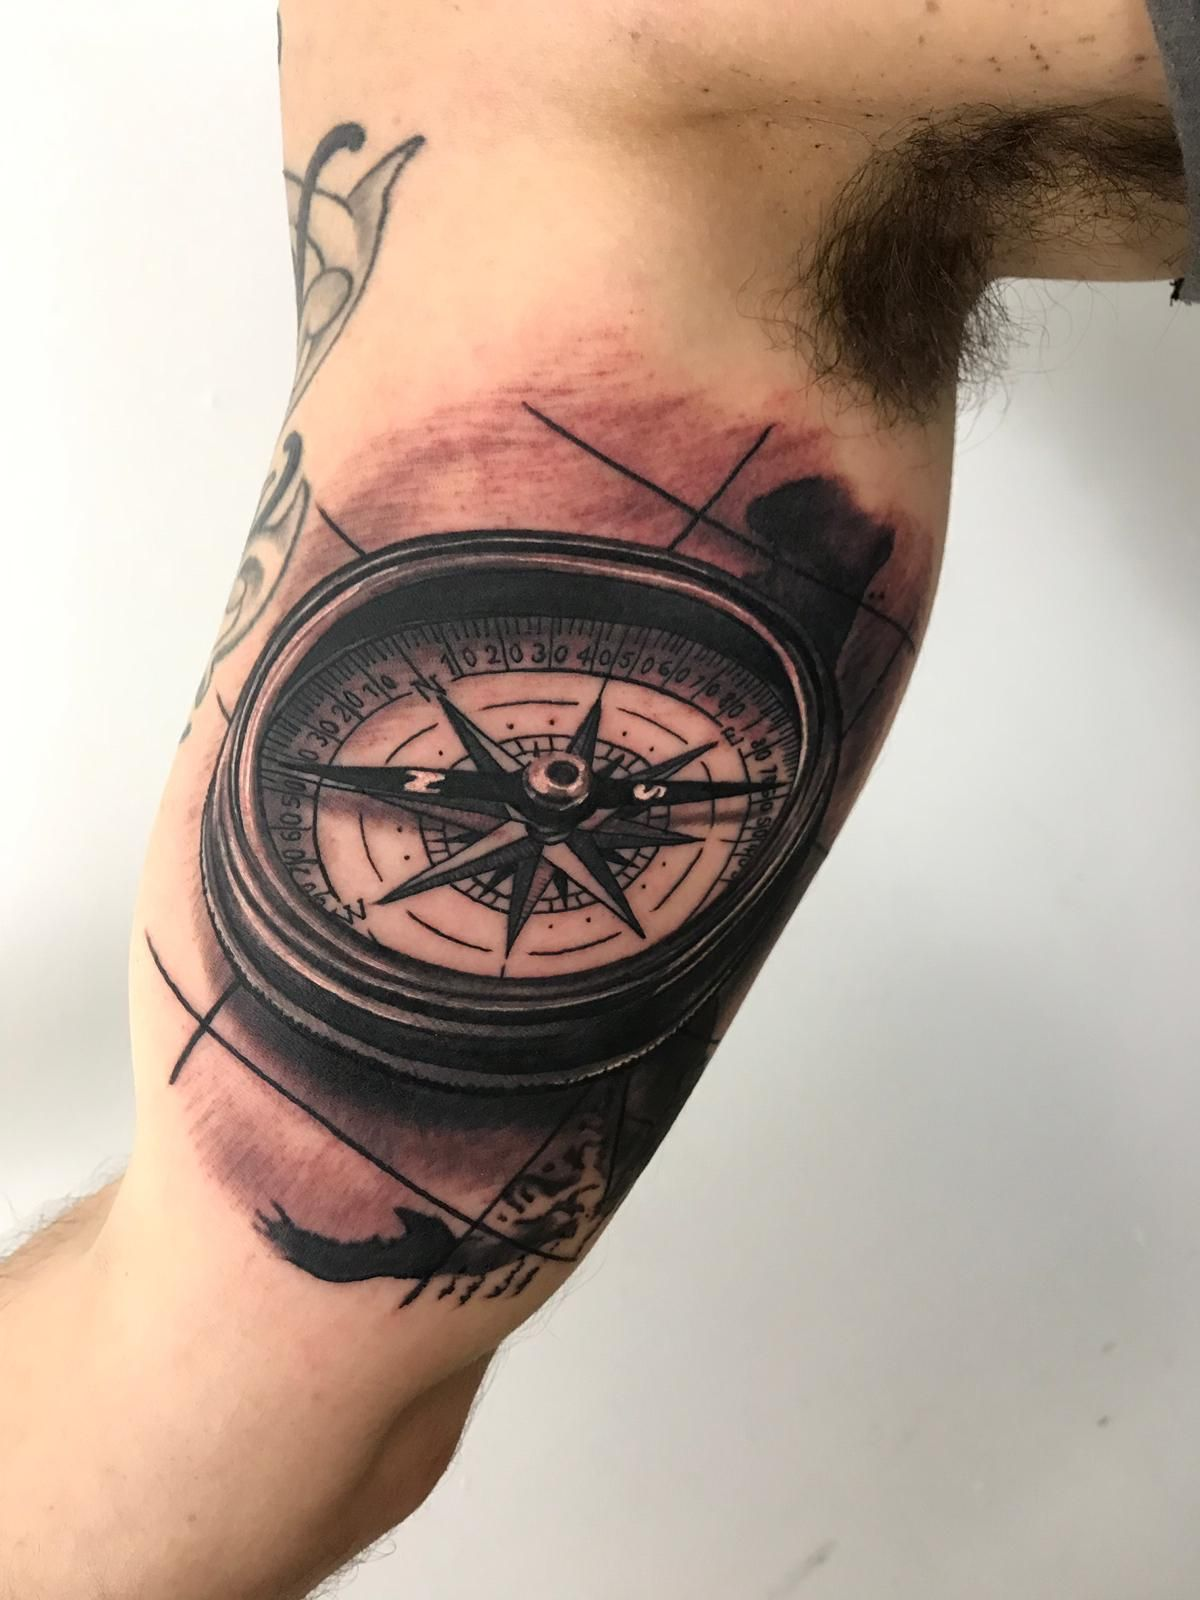 2633e60fc Compass tattoo by Kris R! Limited availability at Revival Tattoo Studio!